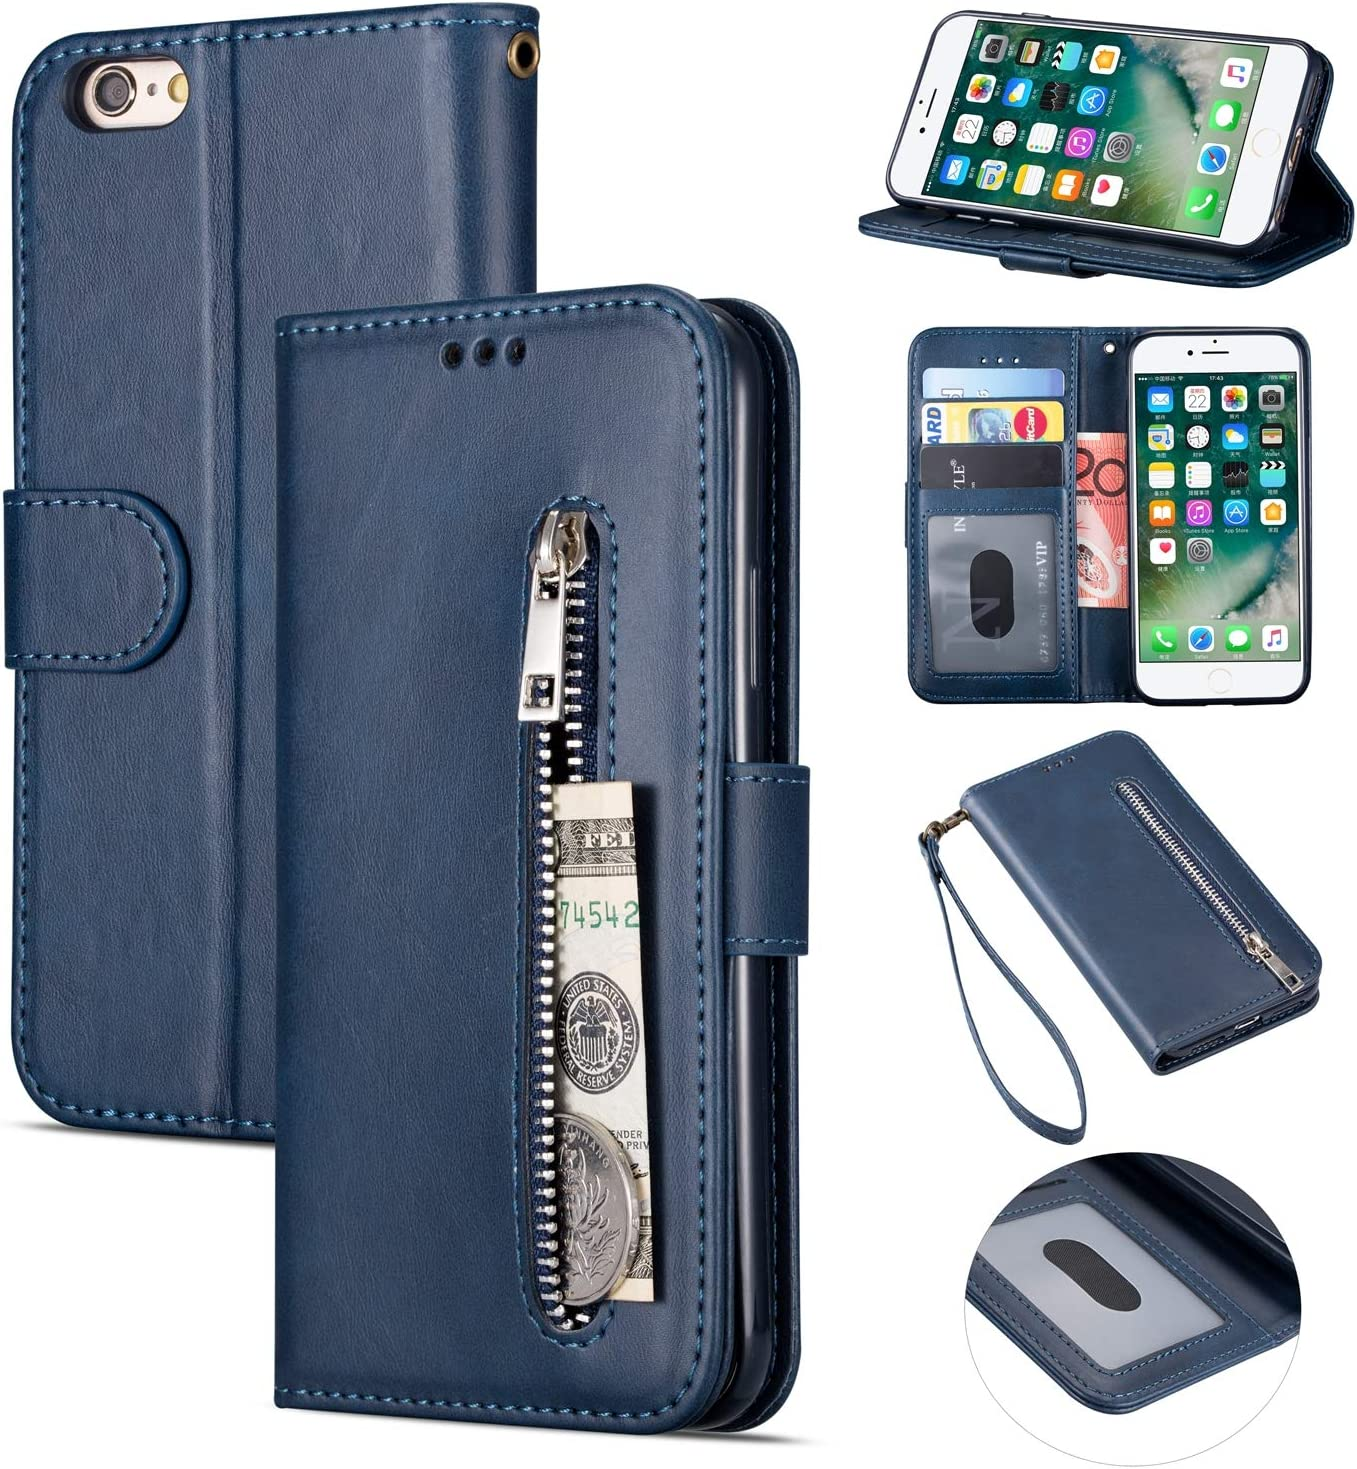 Gray Zipper Wallet Case with Black Dual-use Pen for iPhone 6 Plus,Aoucase Money Coin Pocket Card Holder Shock Resistant Strap Purse PU Leather Case for iPhone 6 Plus//6S Plus 5.5